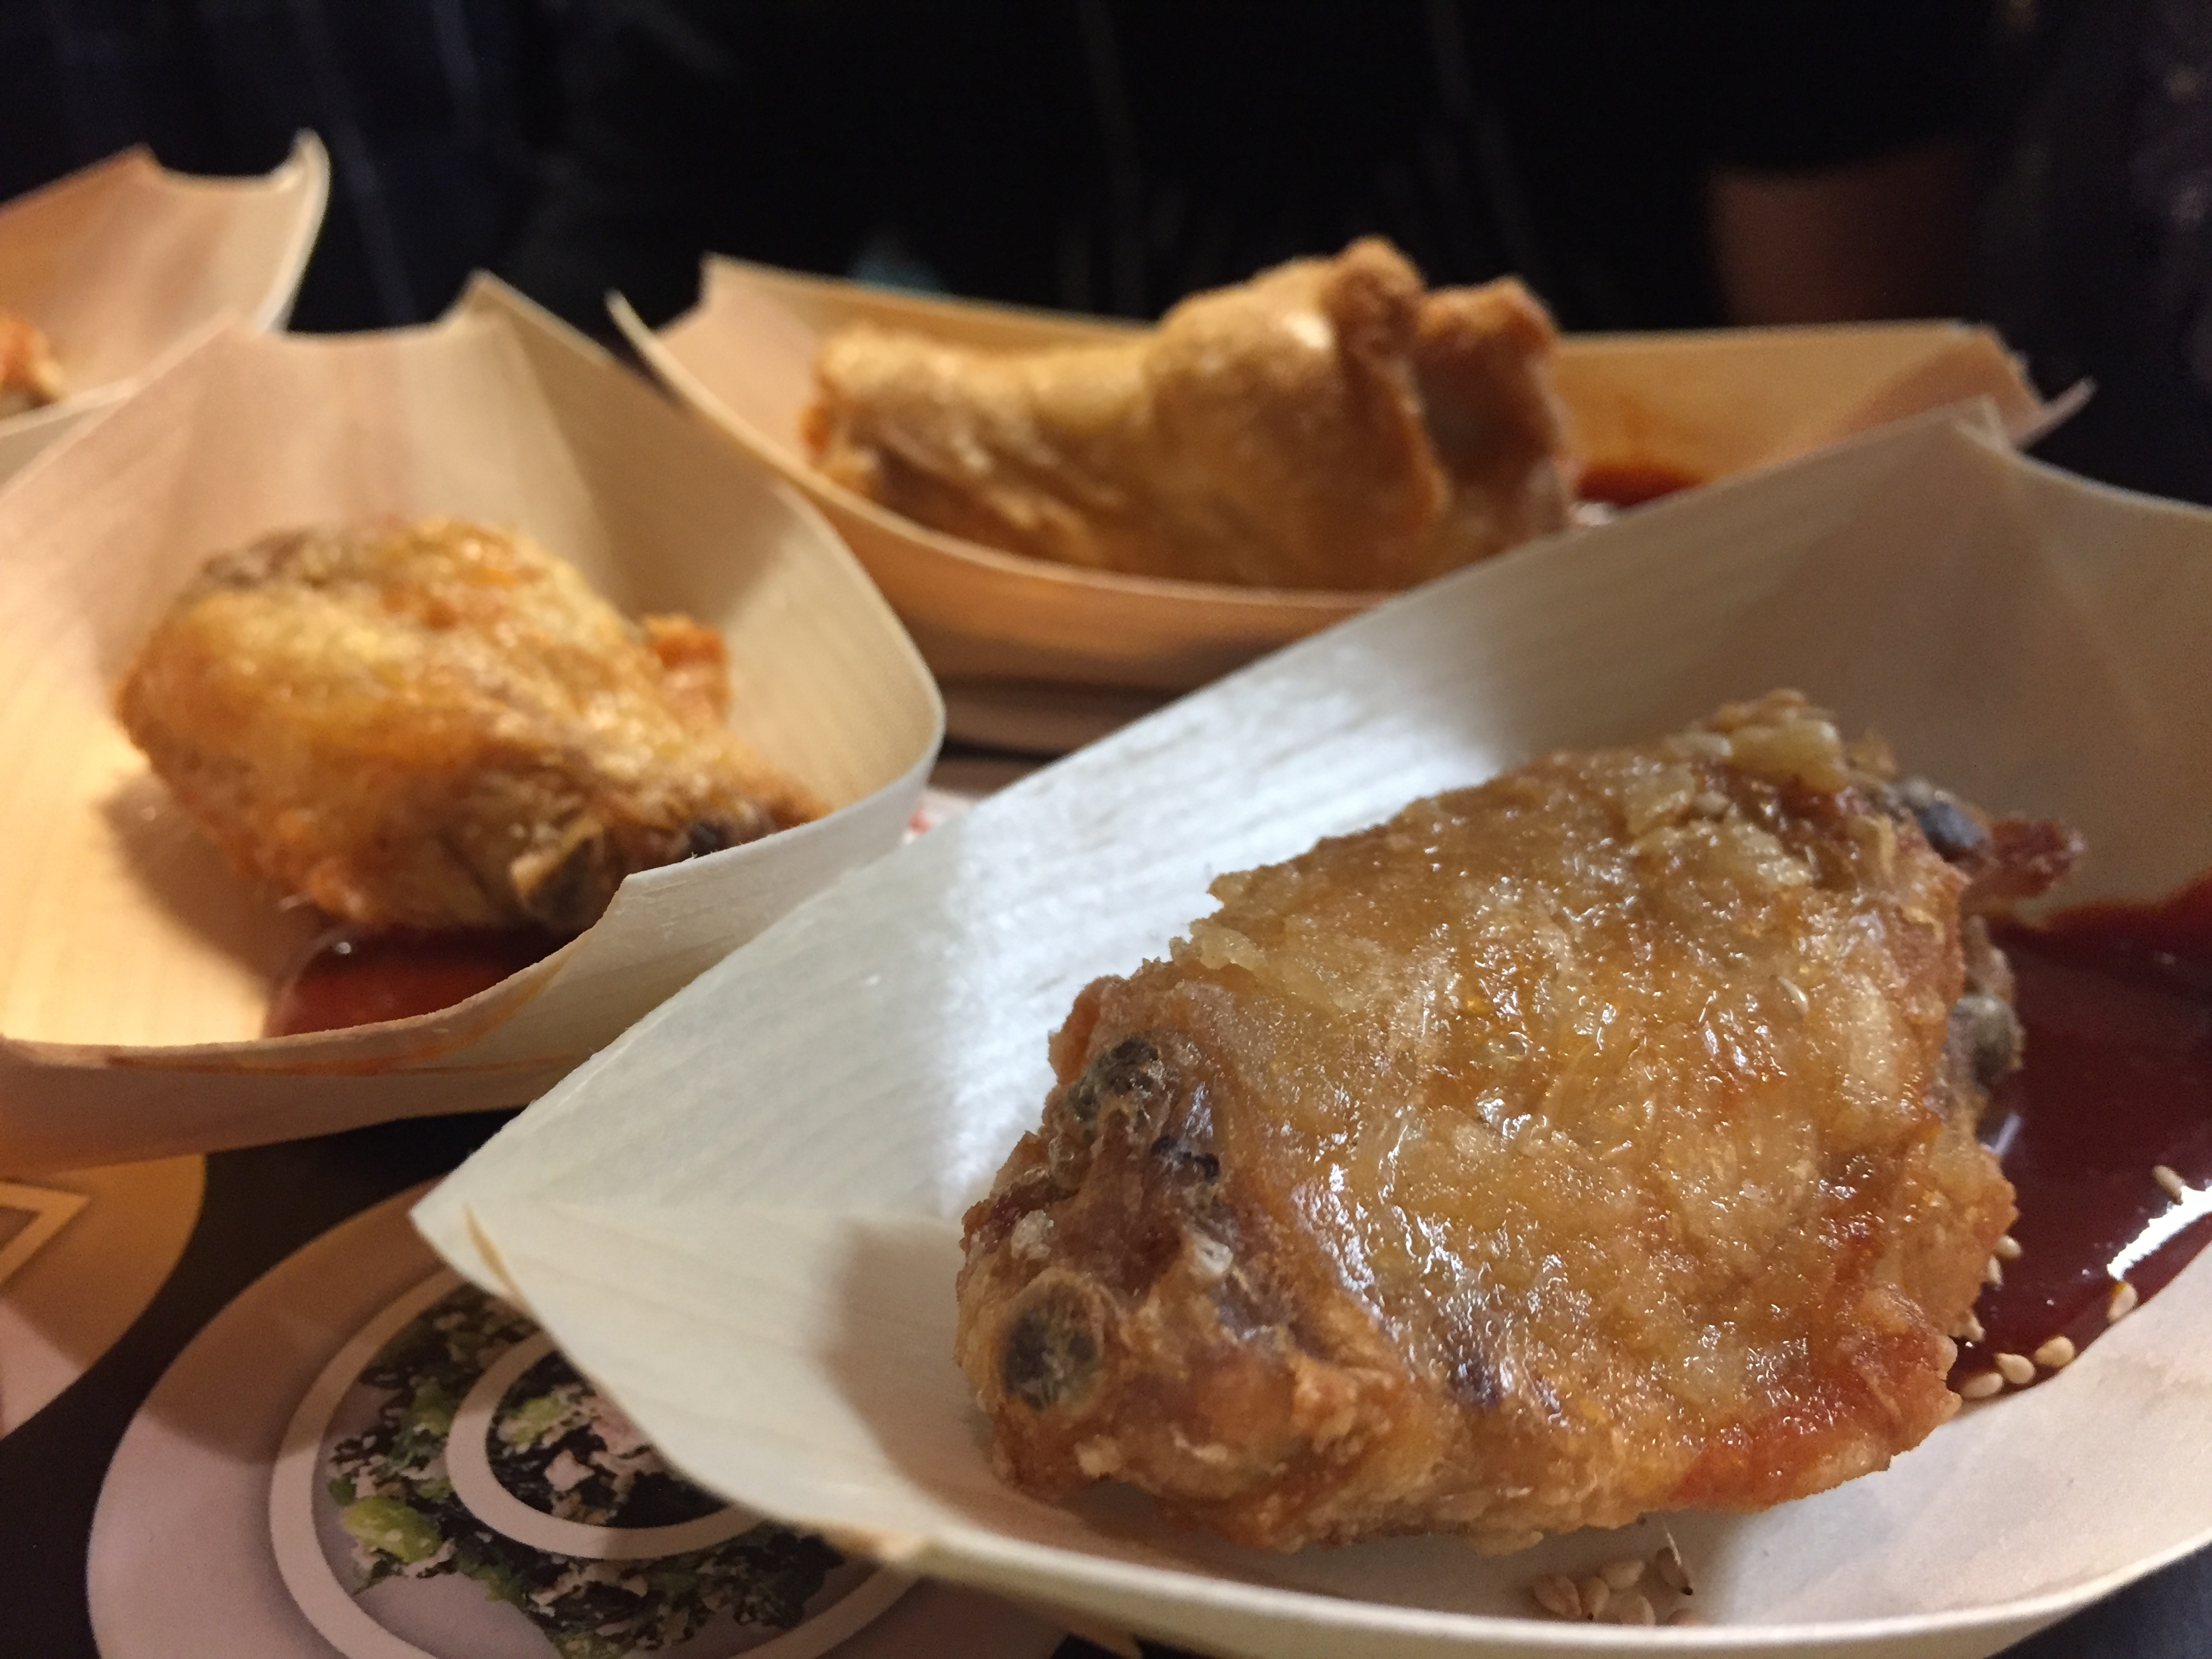 Discover Sunday Bird, a Much-Hyped Korean Fried Chicken Joint Hidden Behind Boba Guys